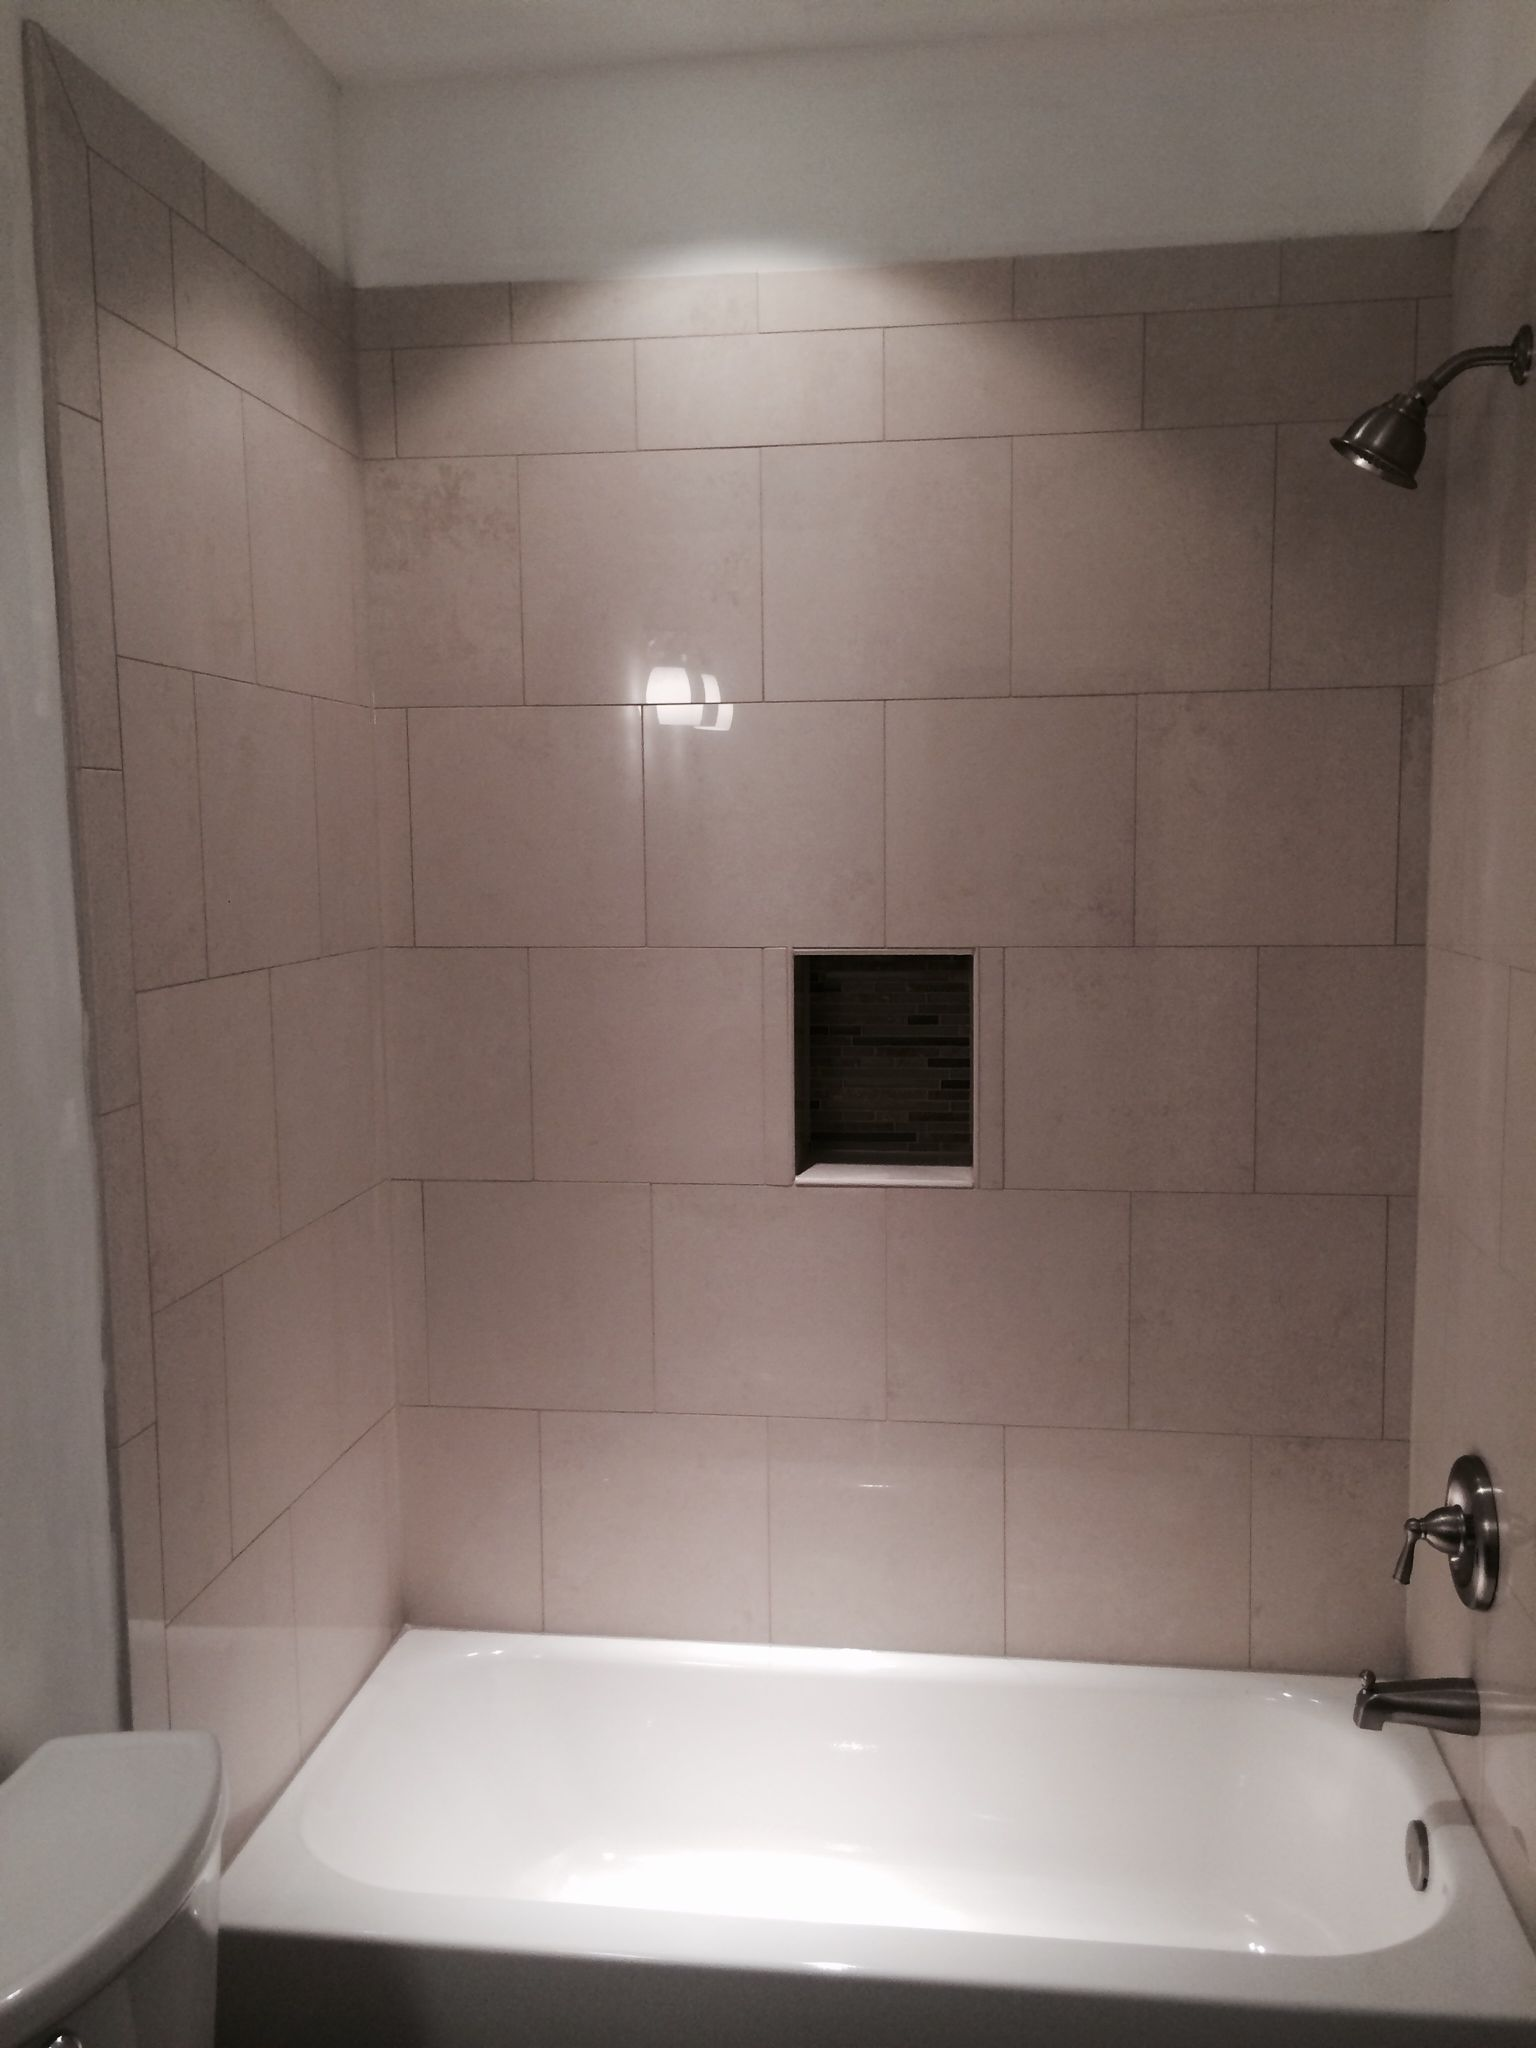 Photos Of Bathroom In Finished Basement In Fairfax VA